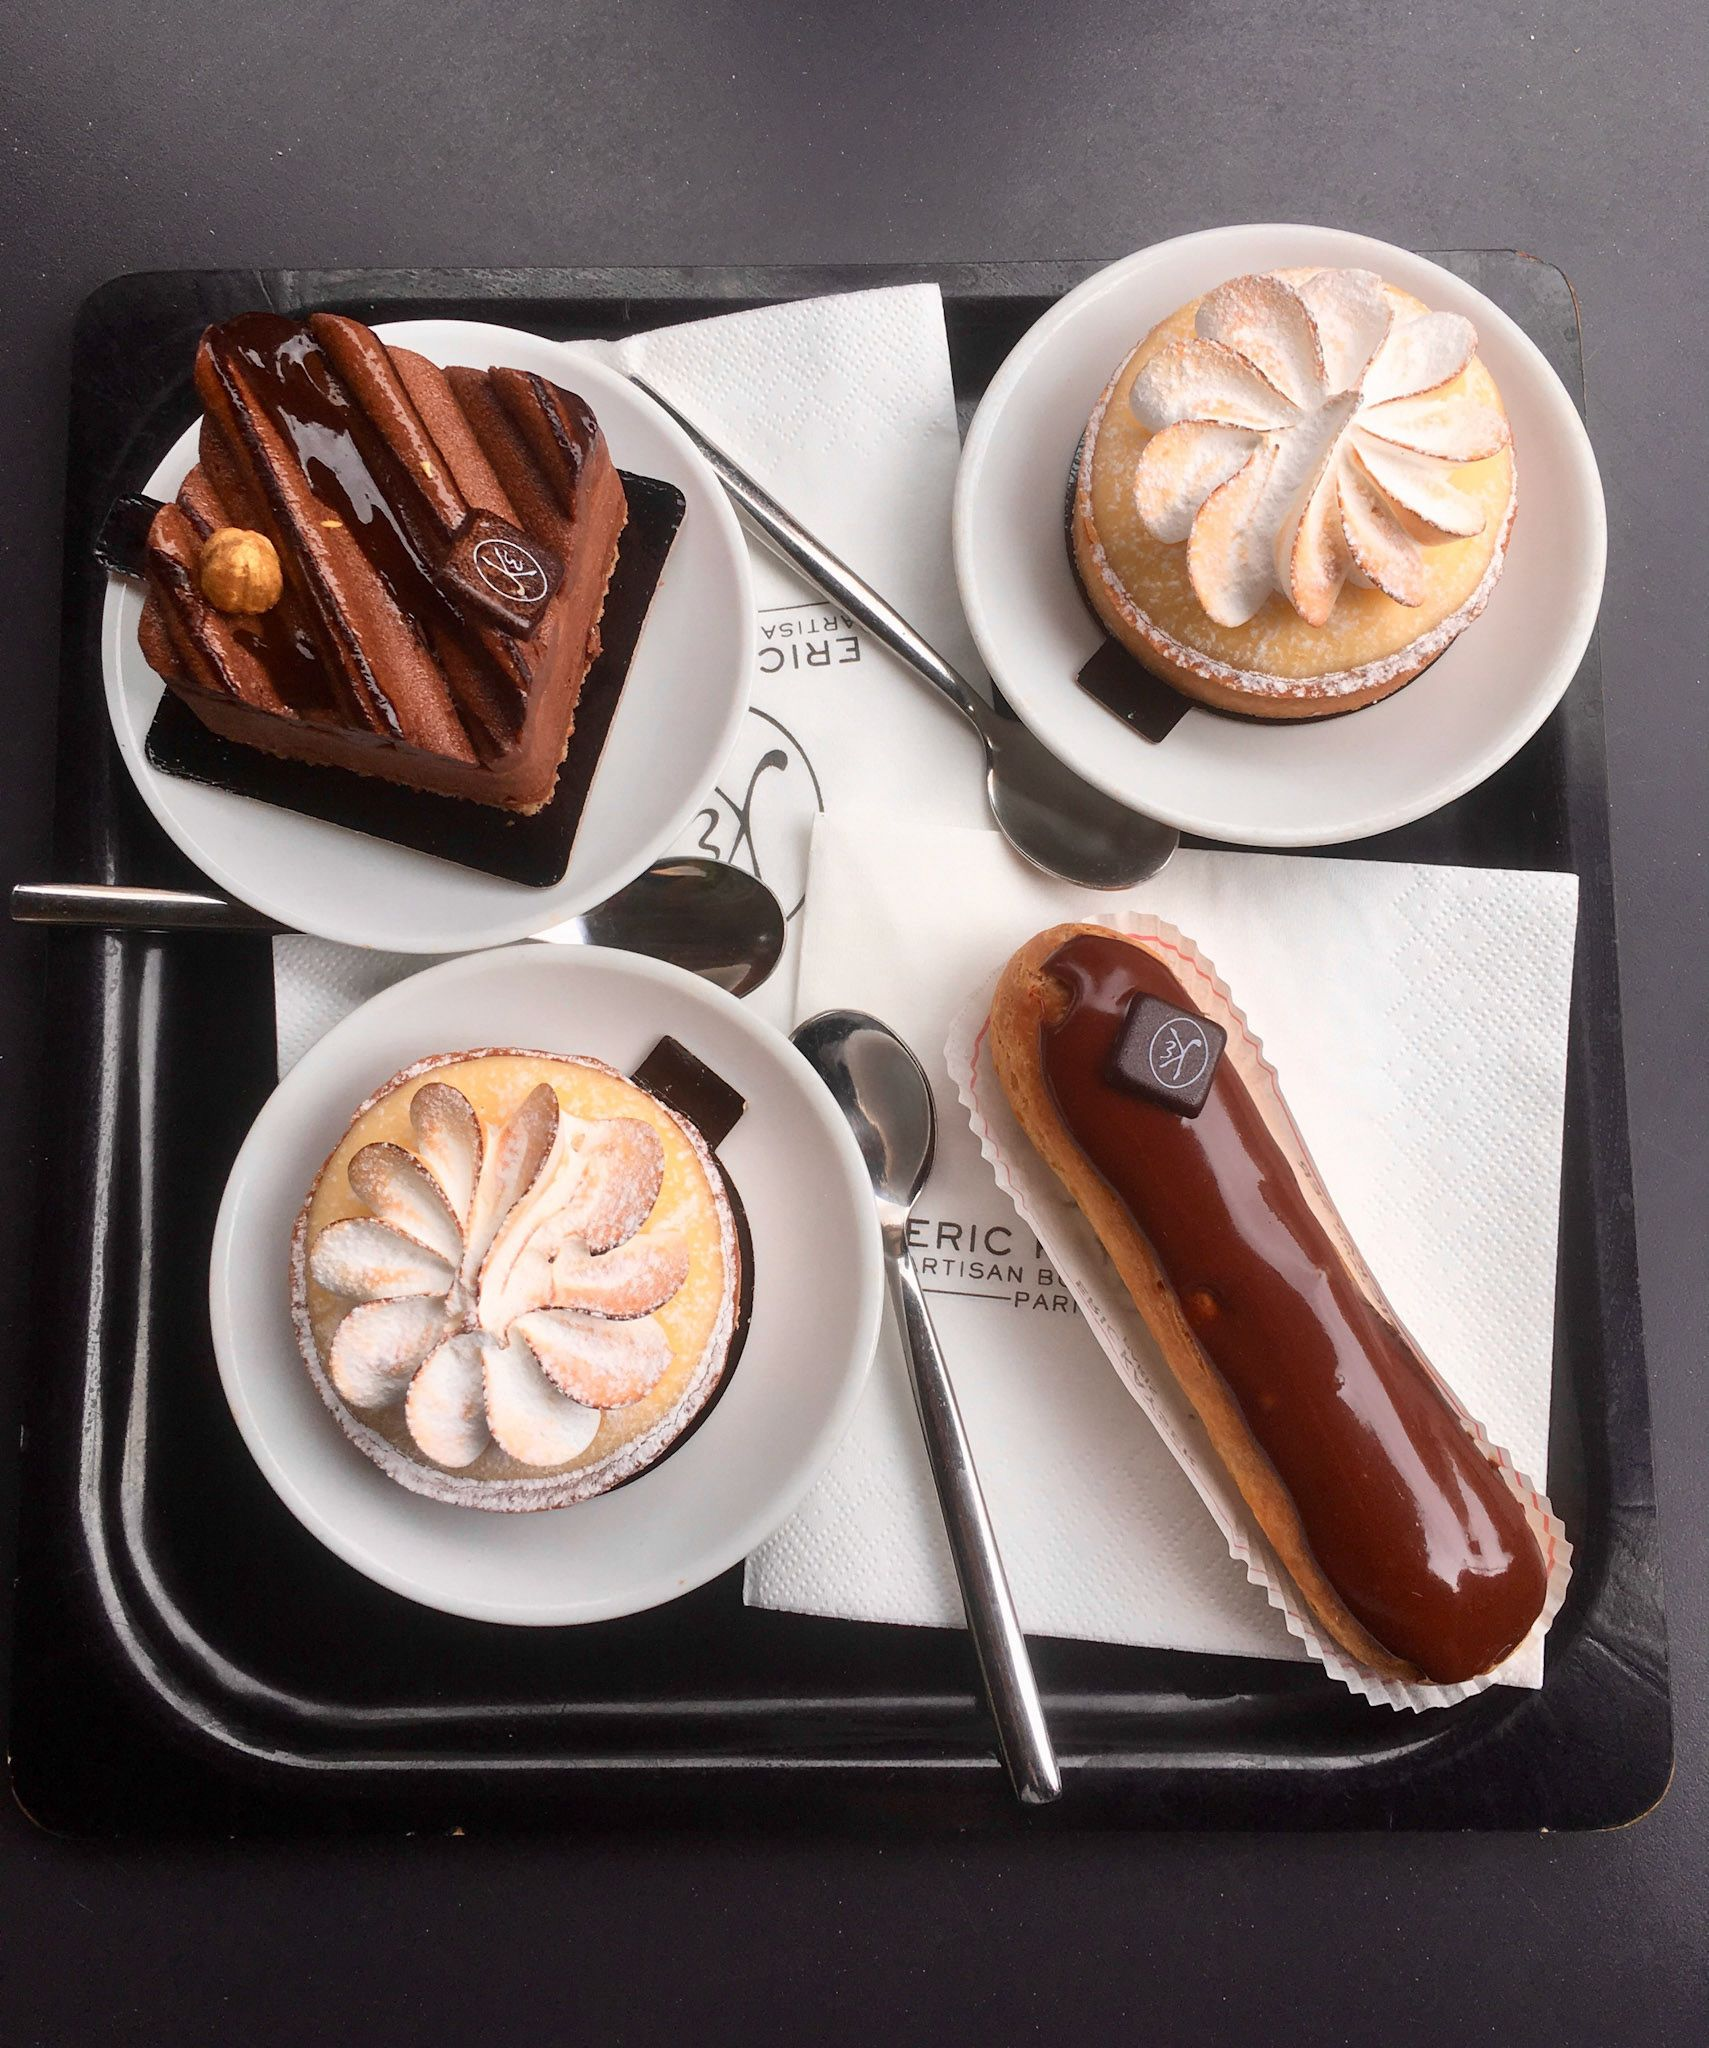 Pastries from Eric Kayser